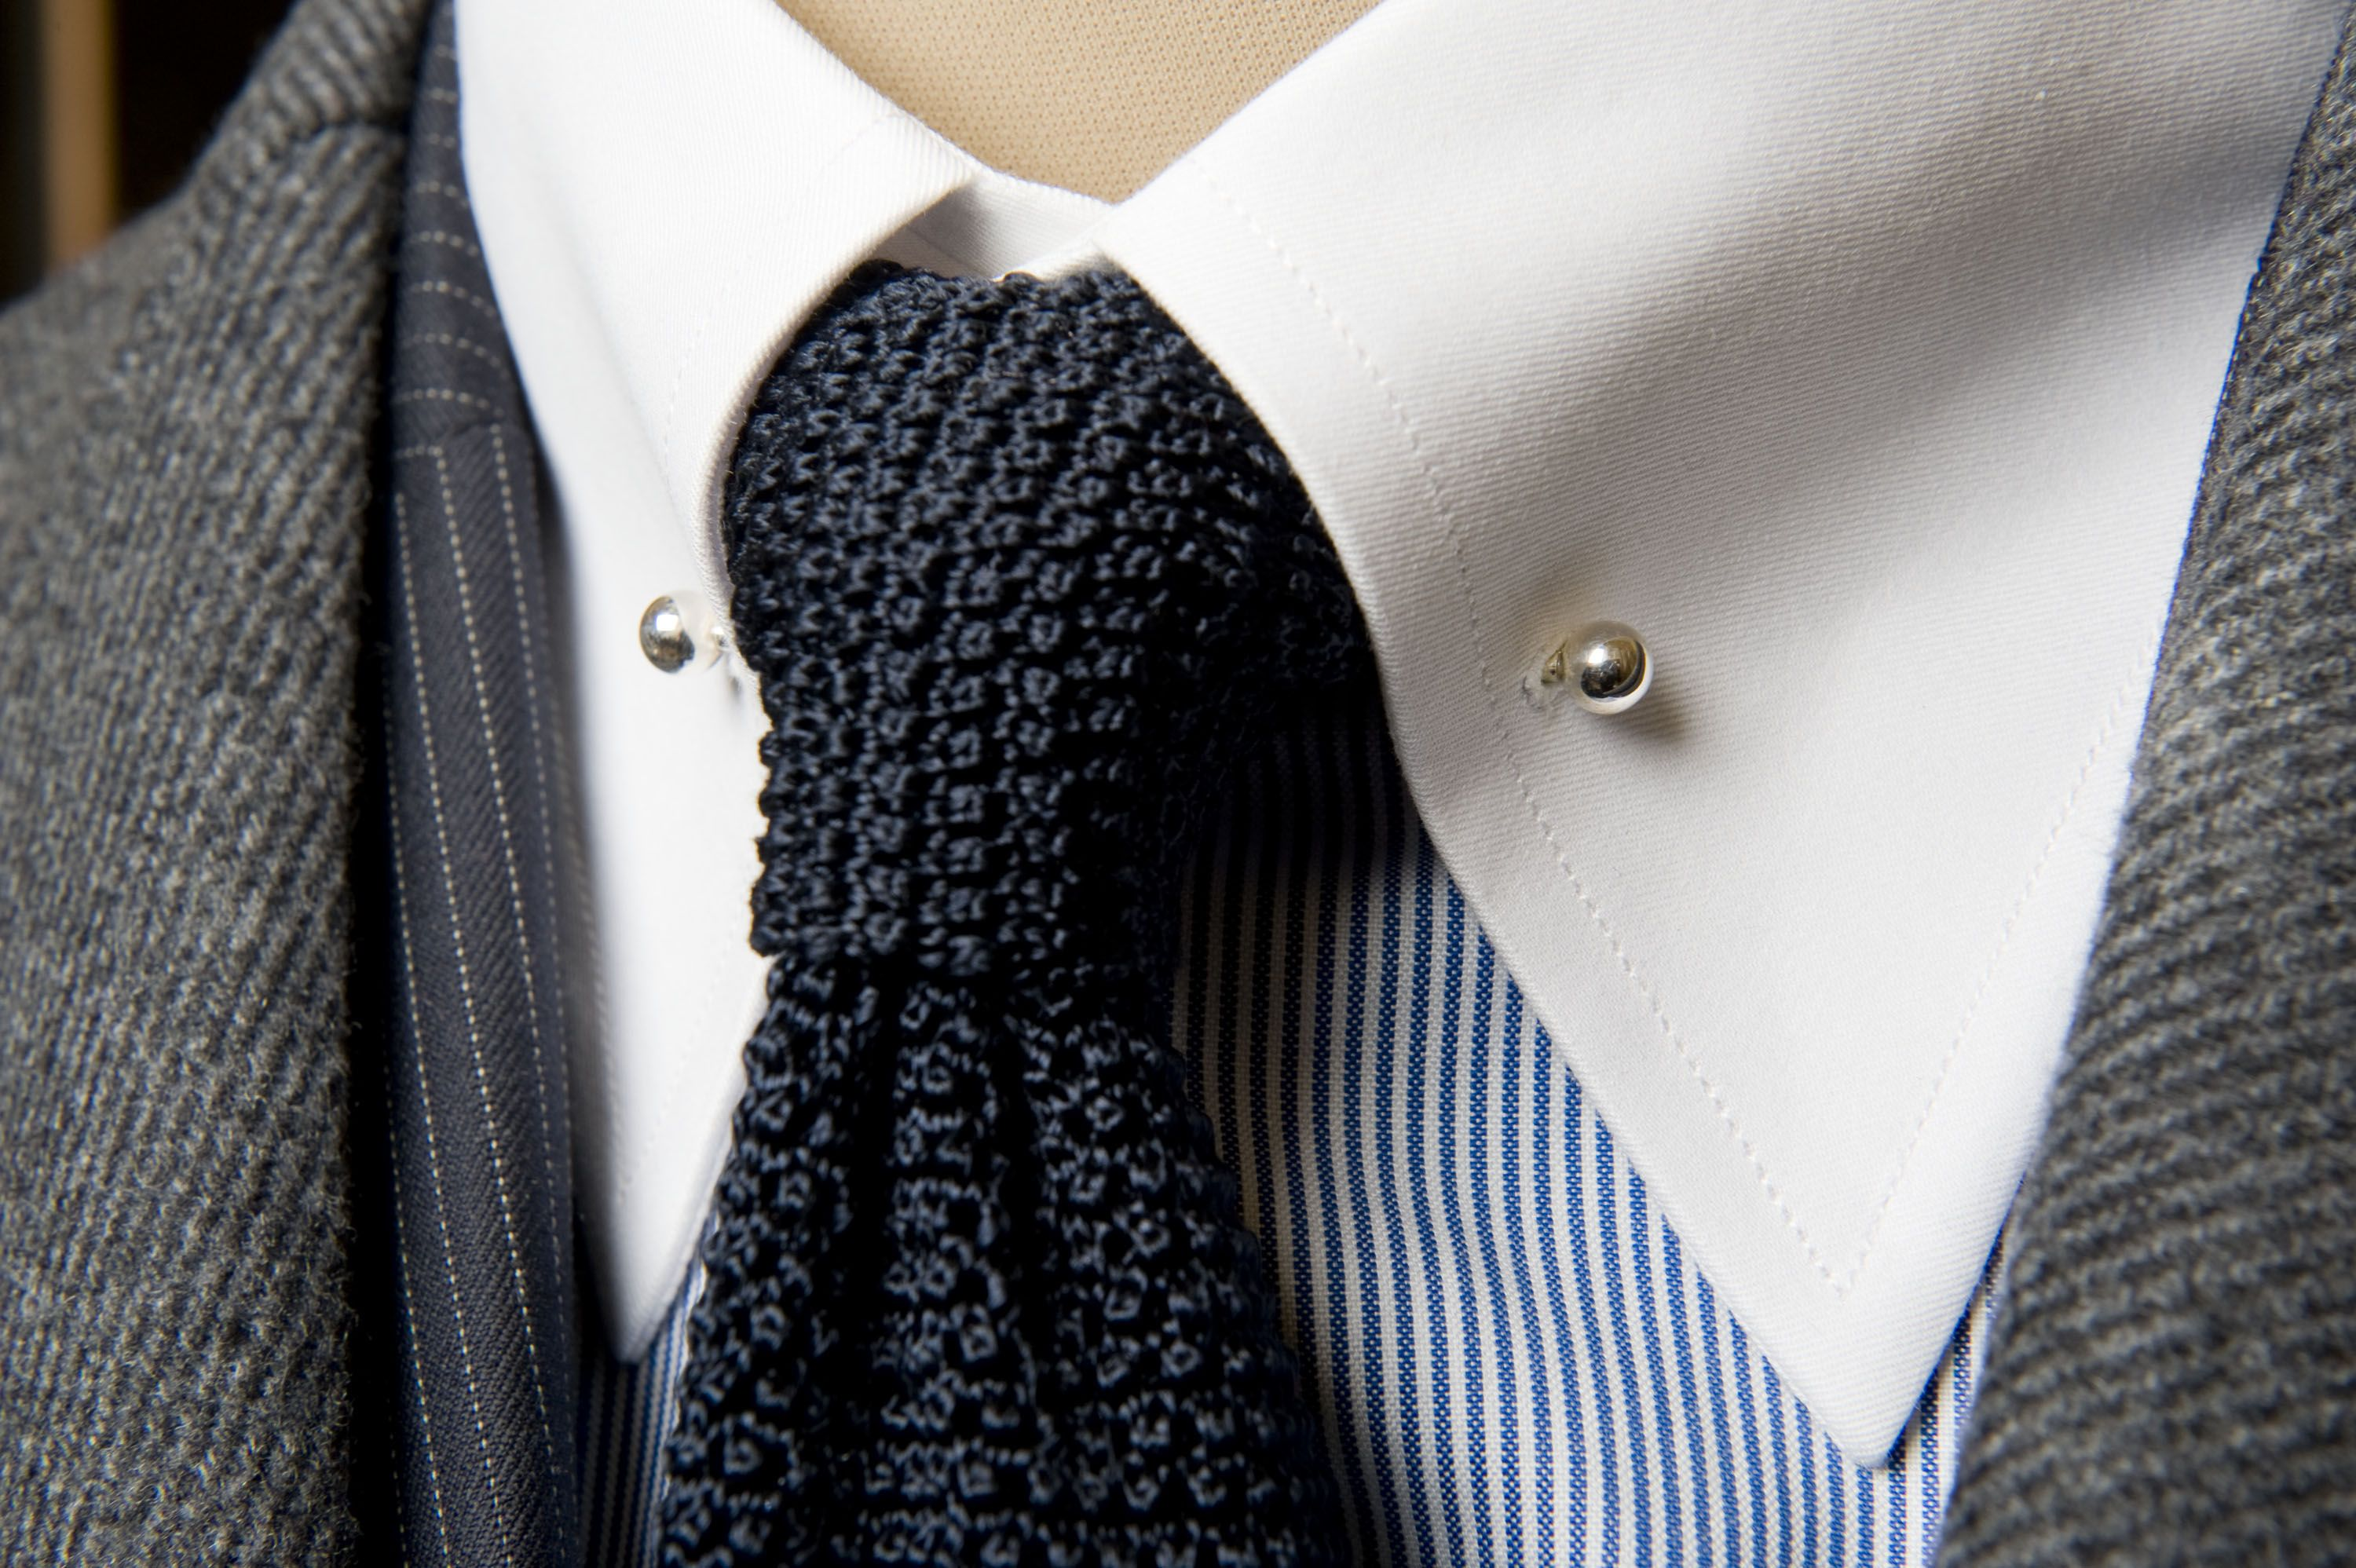 How to collar tie pin wear